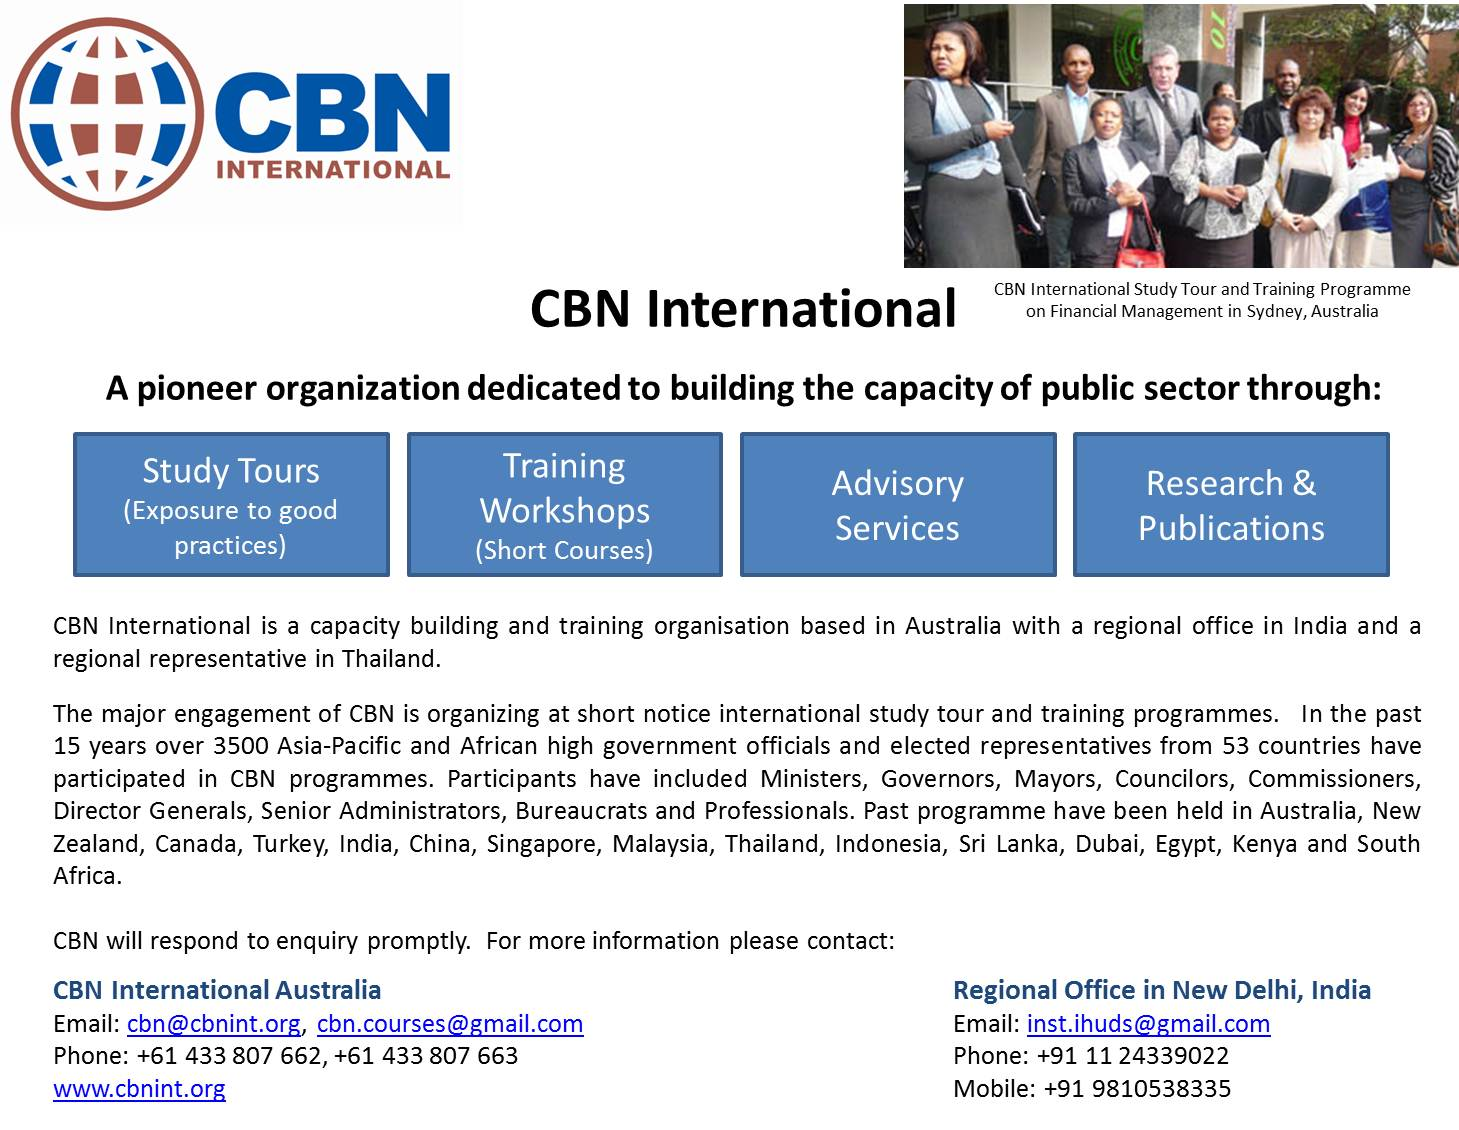 International Study Tour and Training programme organized by CBN International on Good Governance in Sydney, Australia